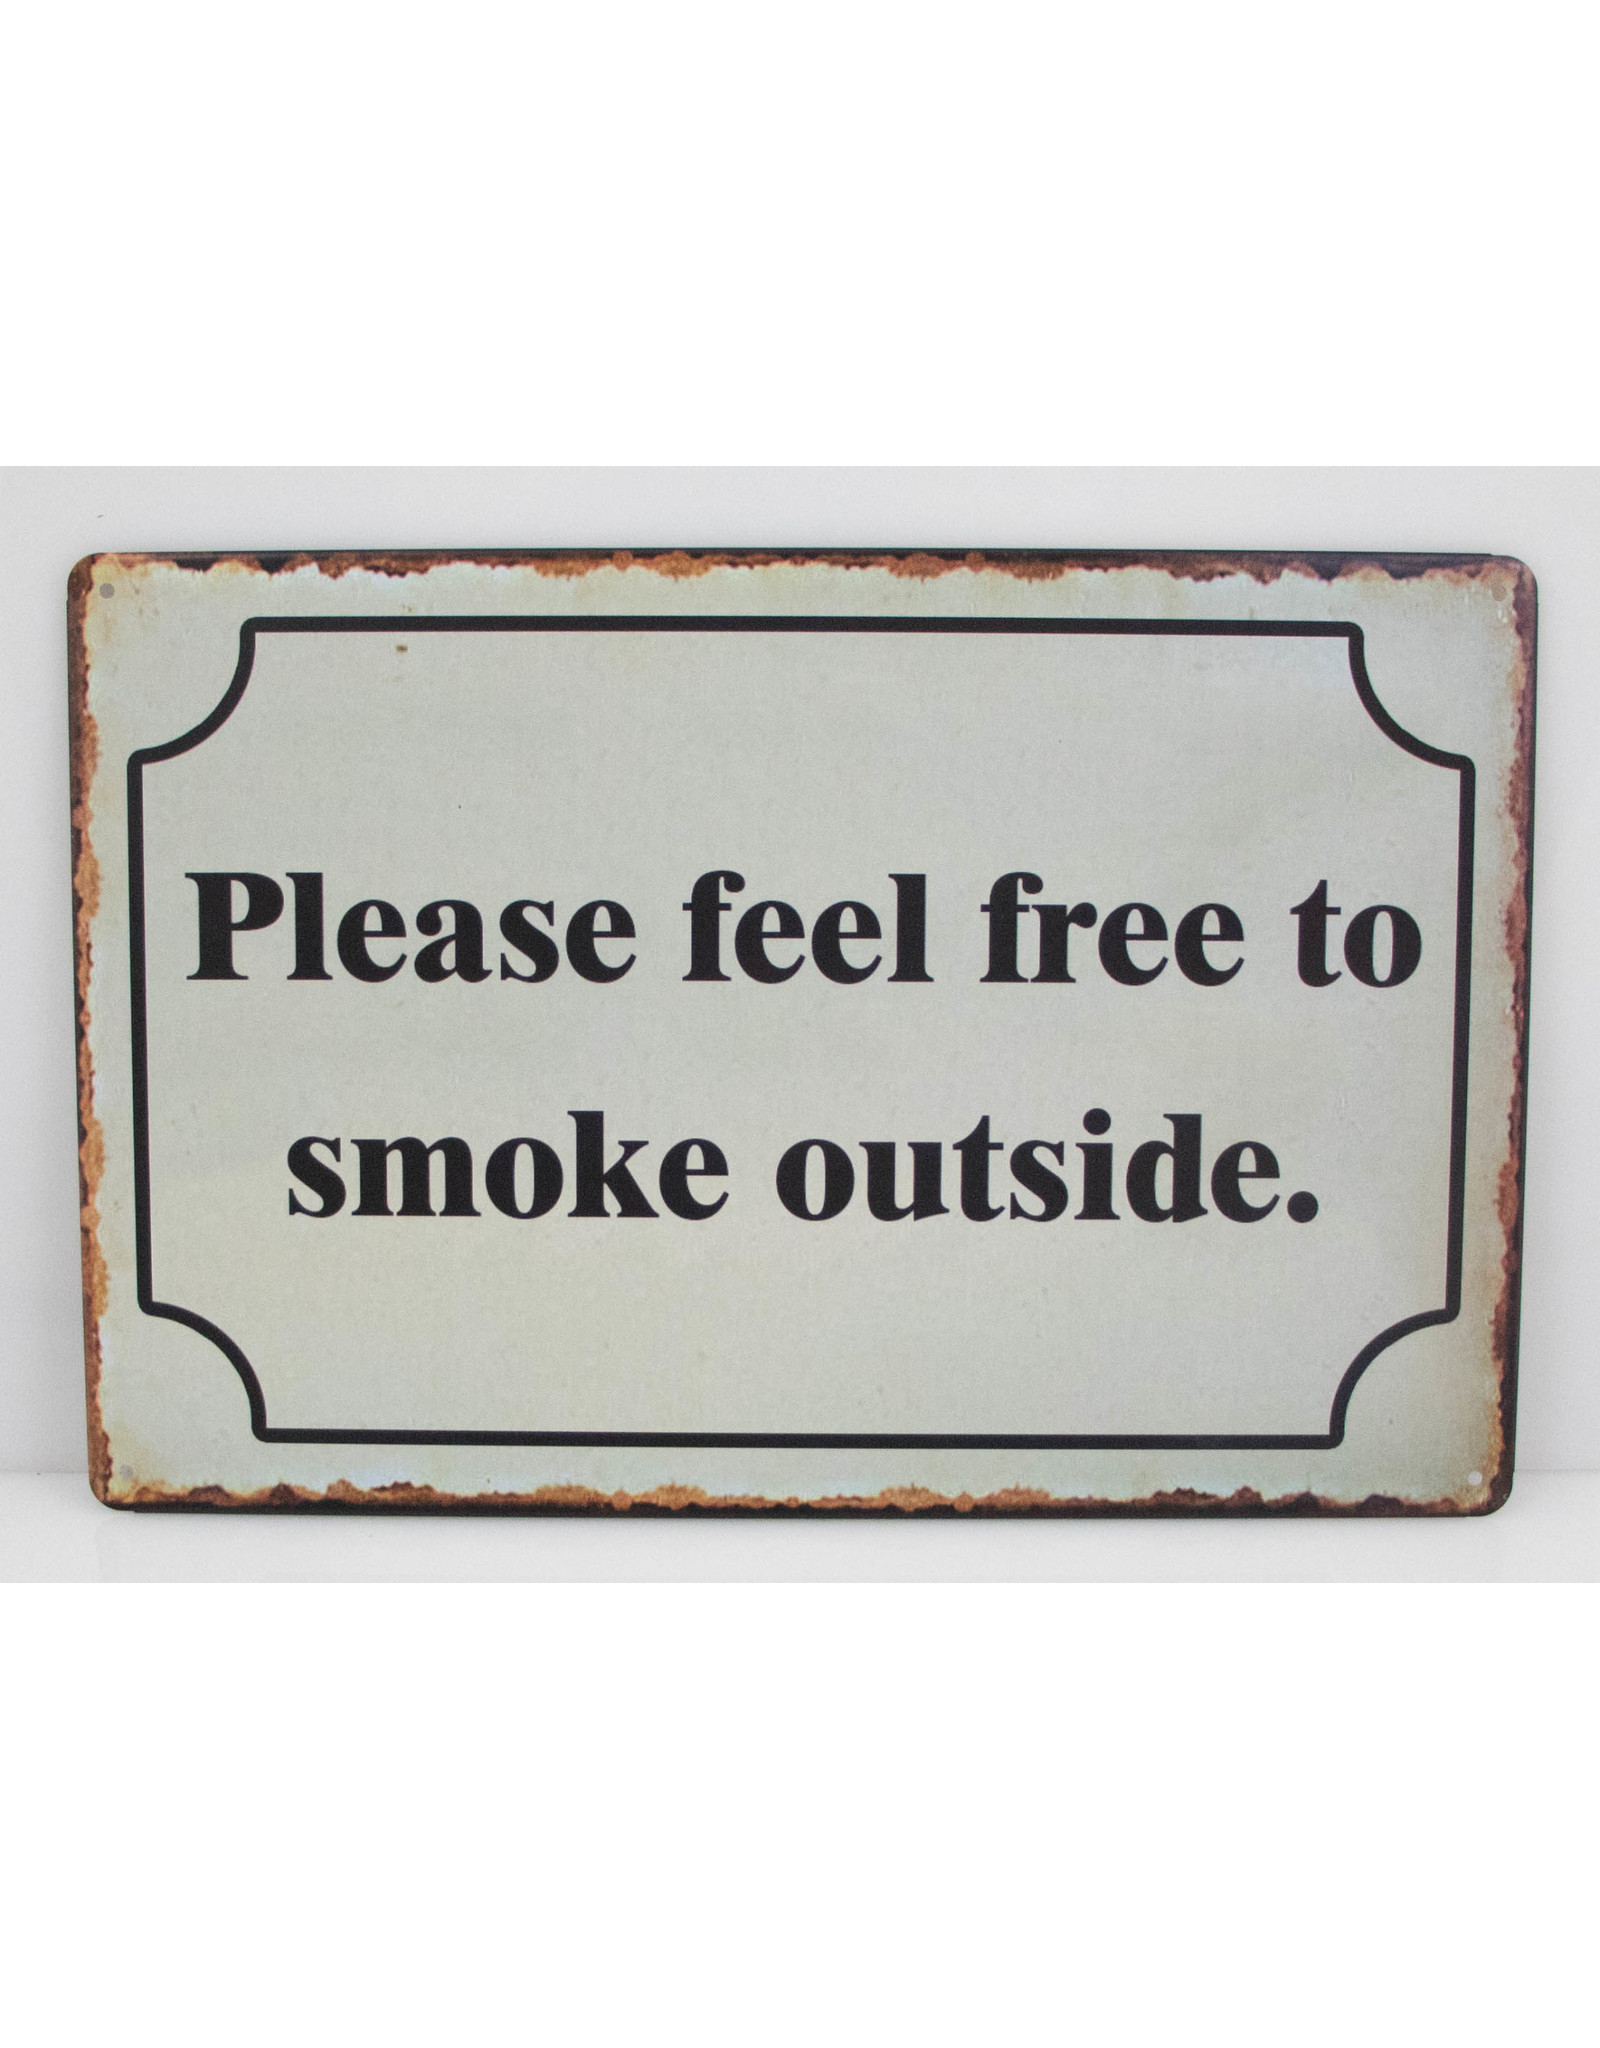 Please feel free to smoke